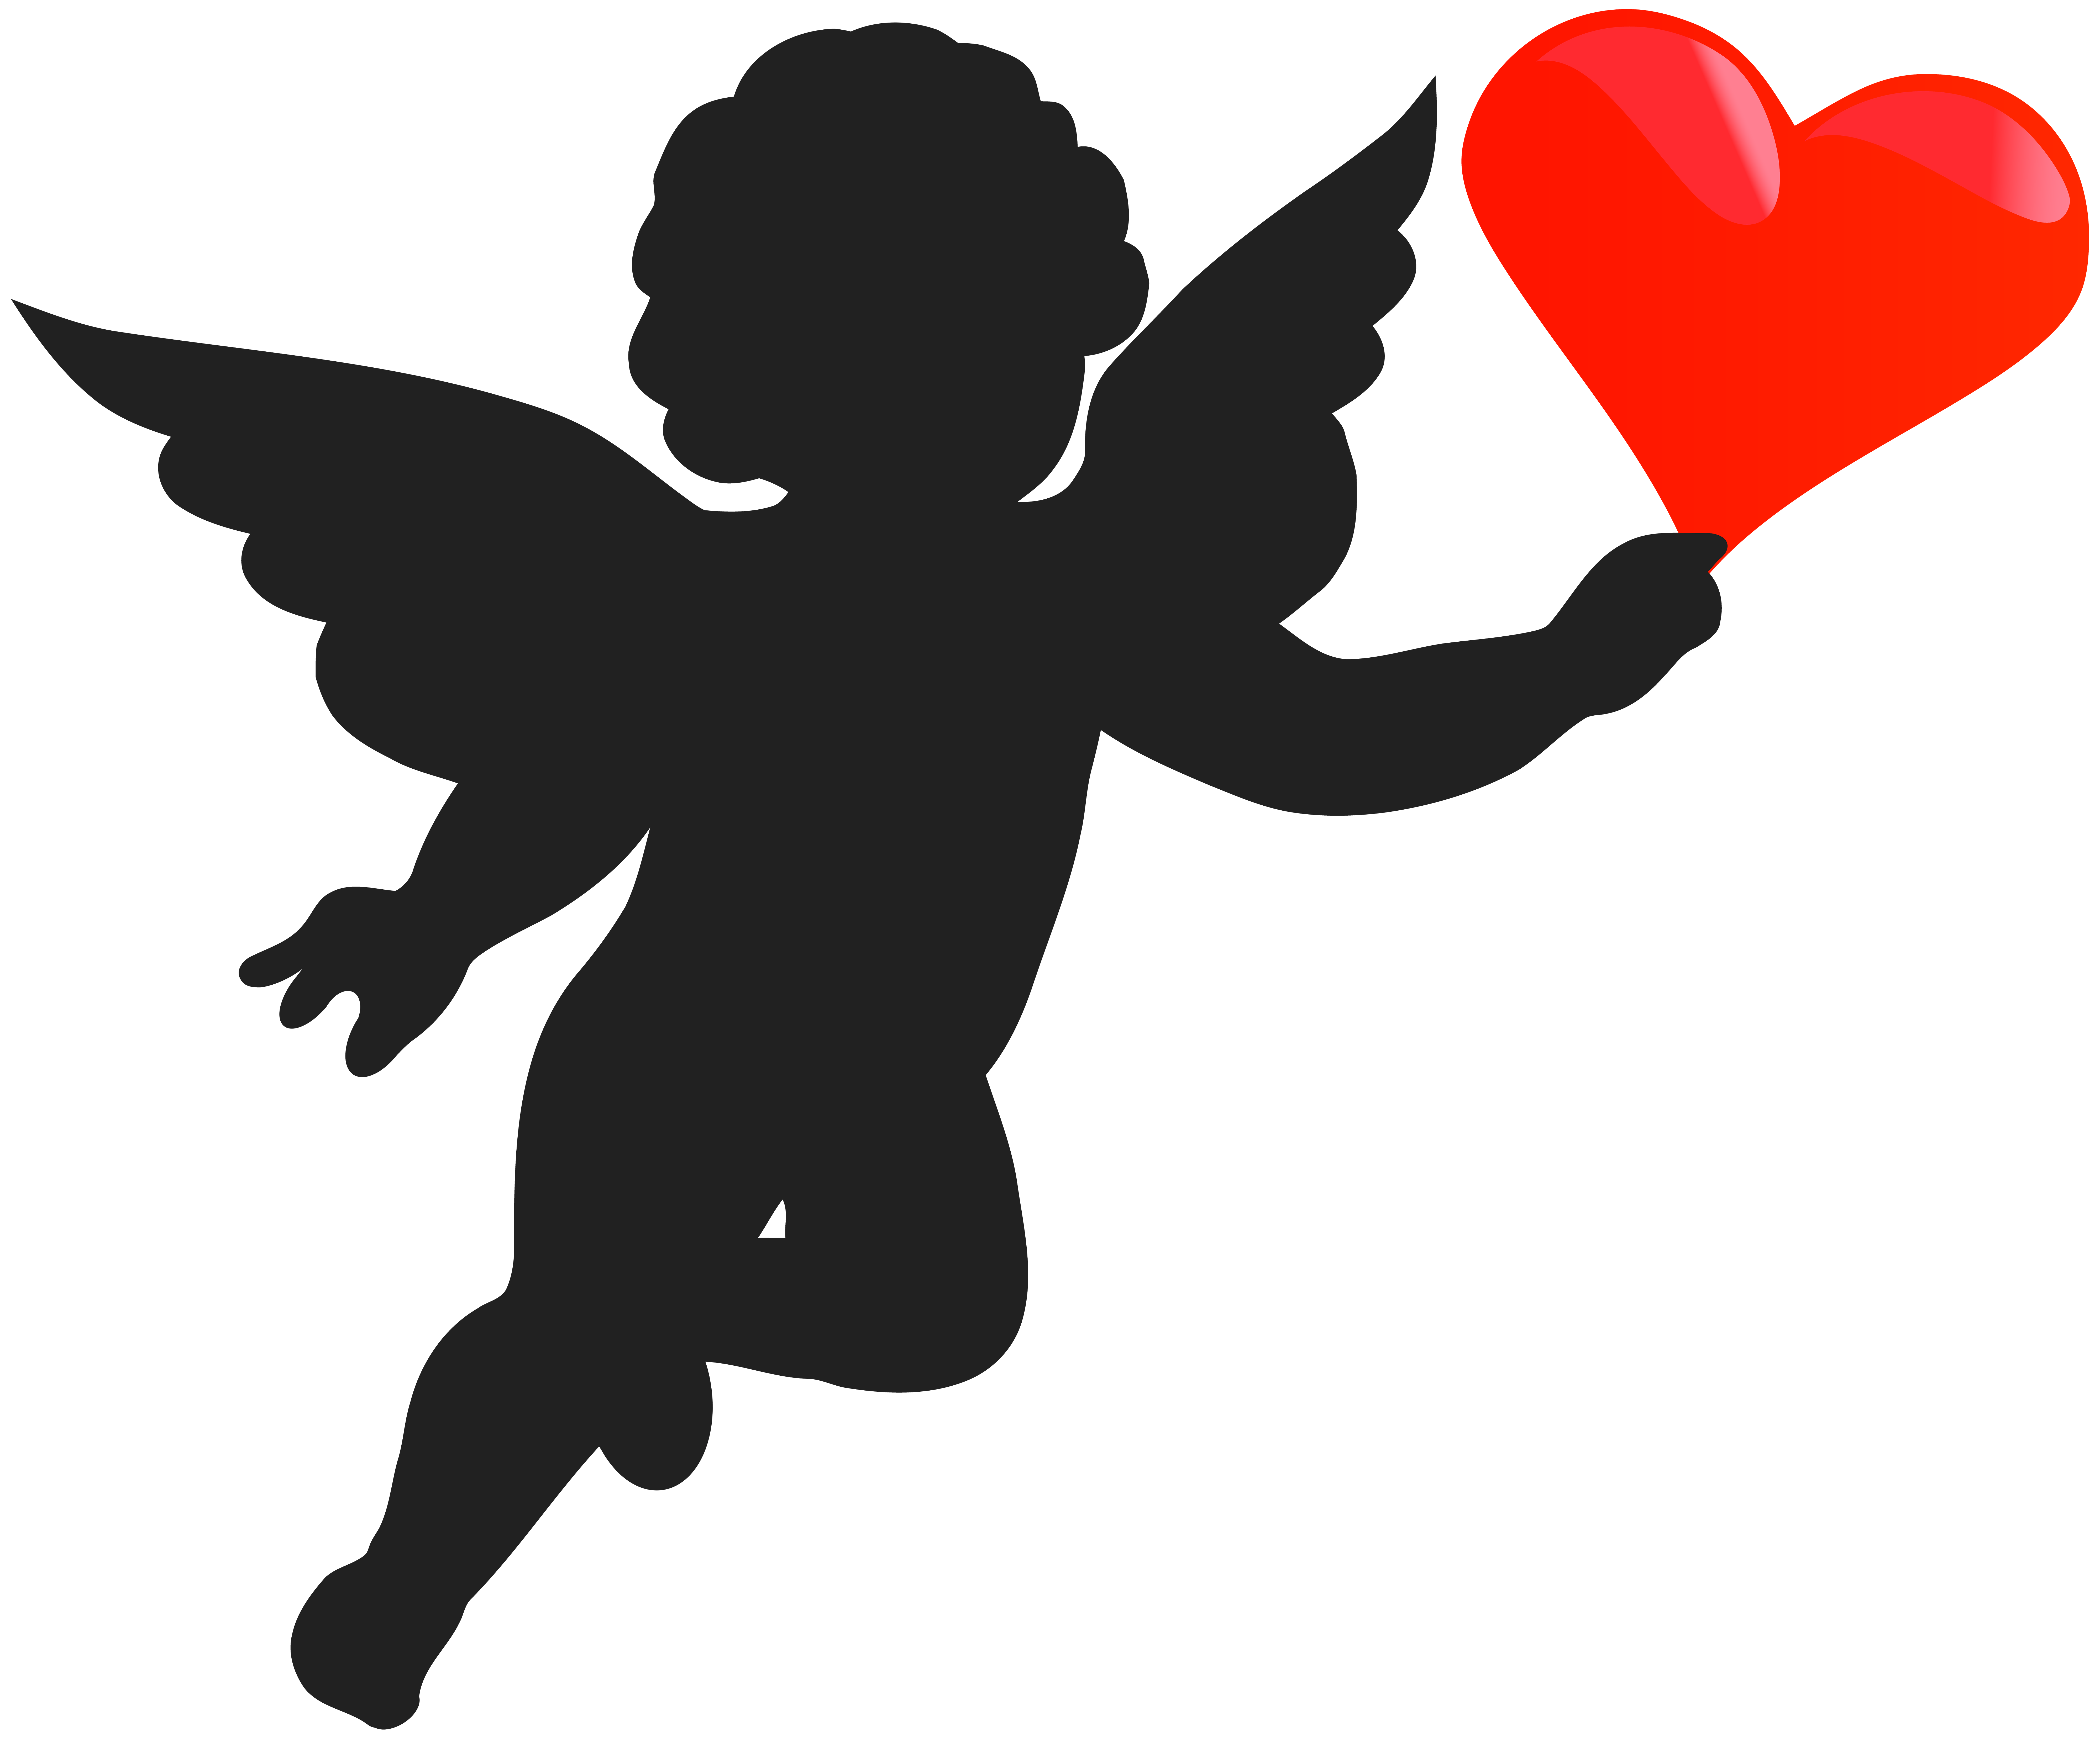 Cupid clipart. Collection of free download